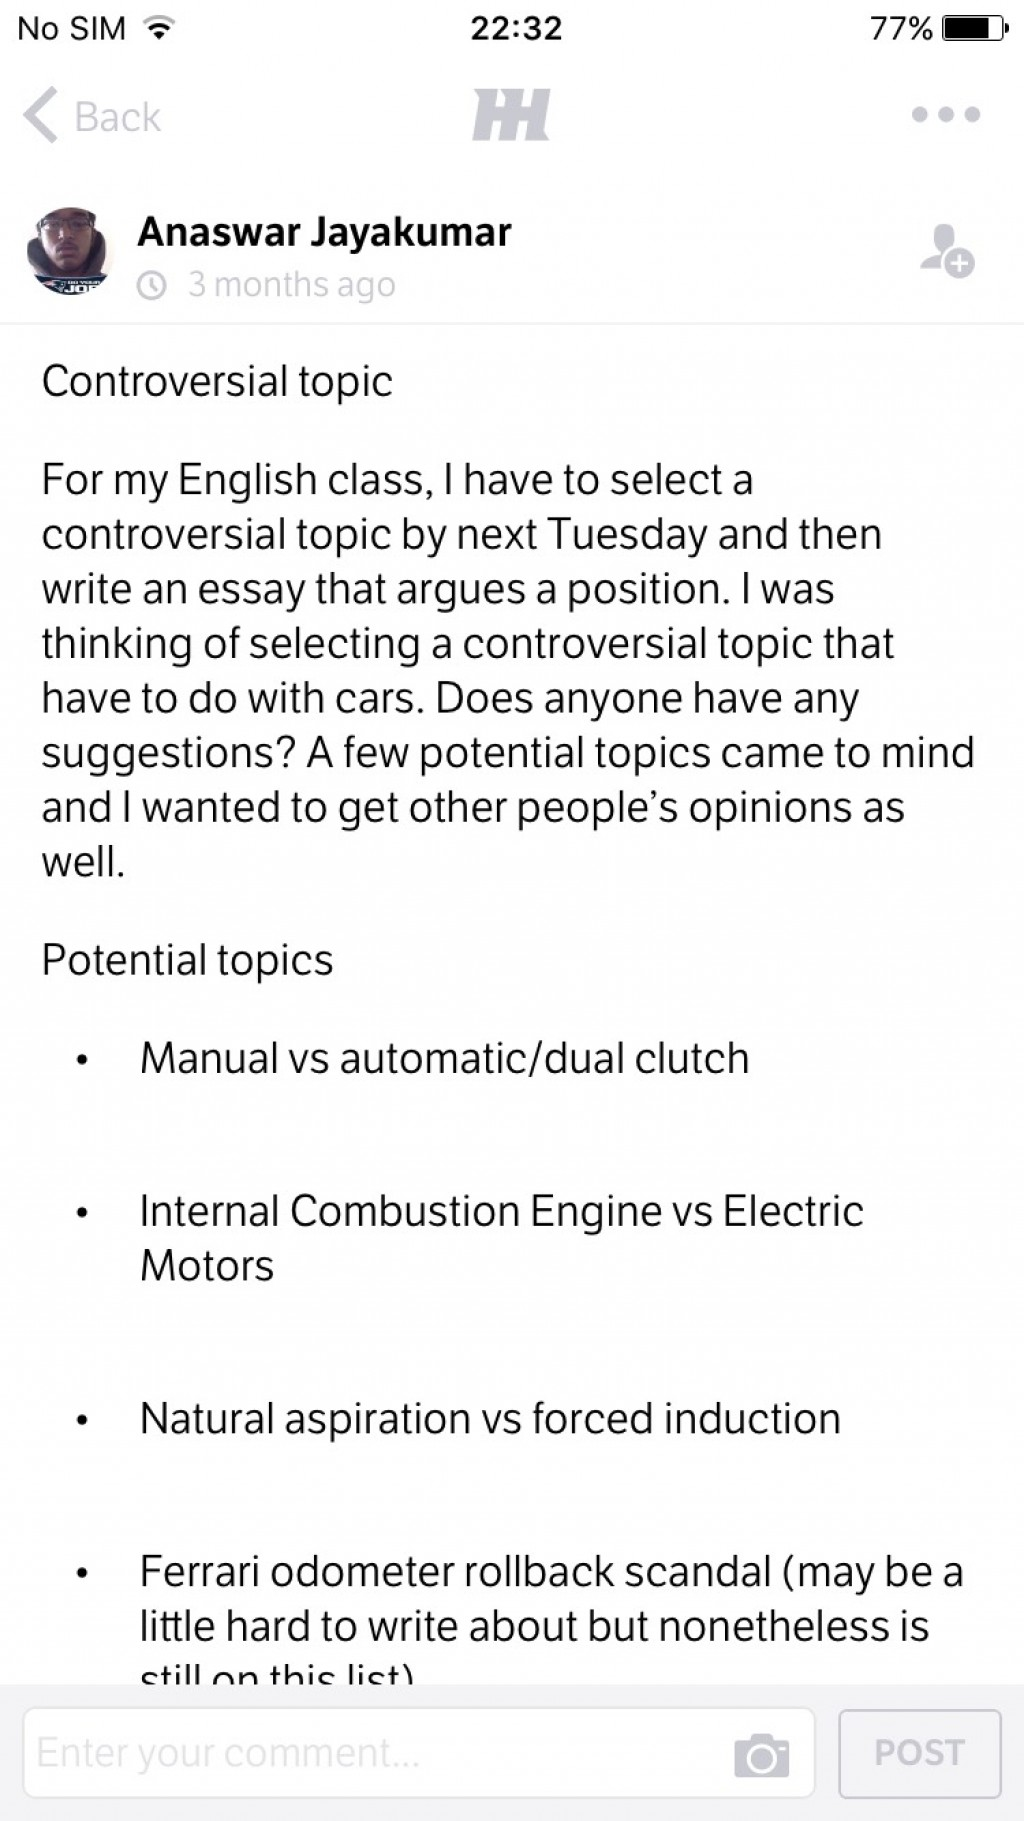 002 Research Paper Controversial Topic Essay Topics Example Outline Issue20 Middle School Phenomenal Questions Science Civil War Large